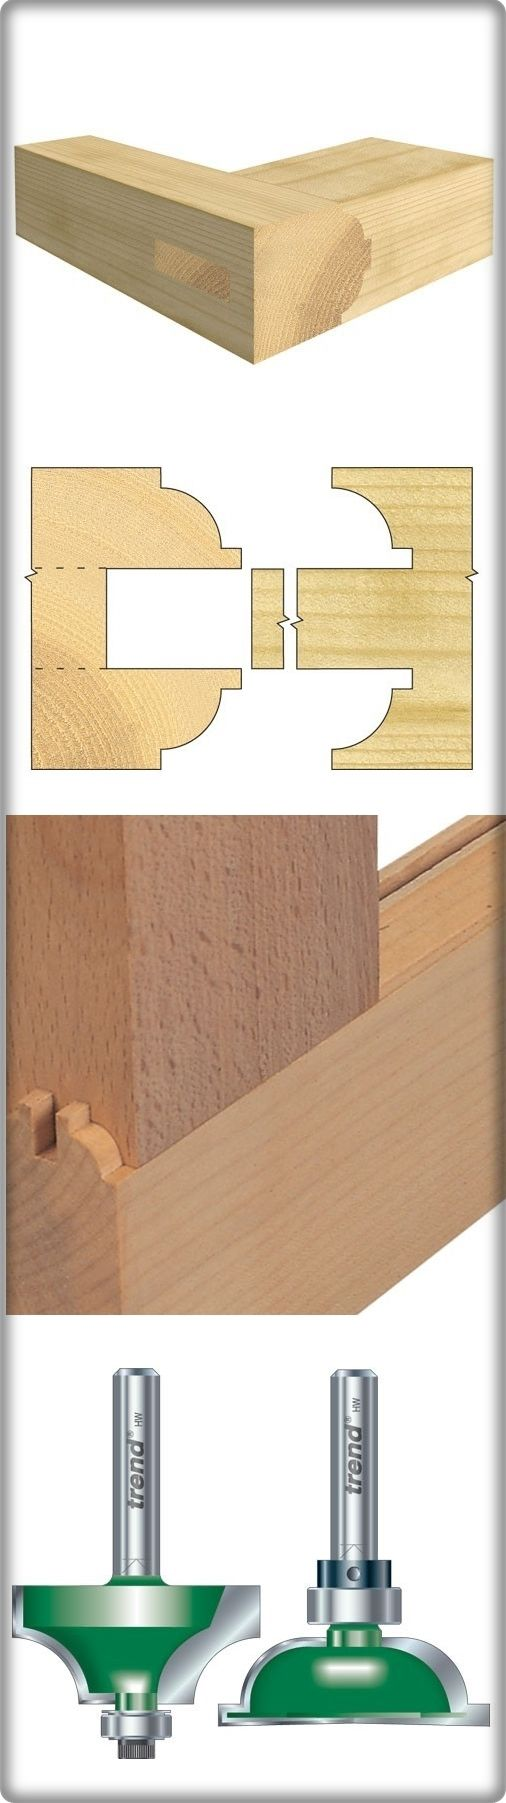 For door and window construction, decorative panelling and many other joinery applications... #Shoulder scribe/profile #set (http://www.woodfordtooling.com/craftpro-router-cutters/ovolo-jointers-scribers/ovolo-bar-set/shoulder-scribe-profile-set.html)